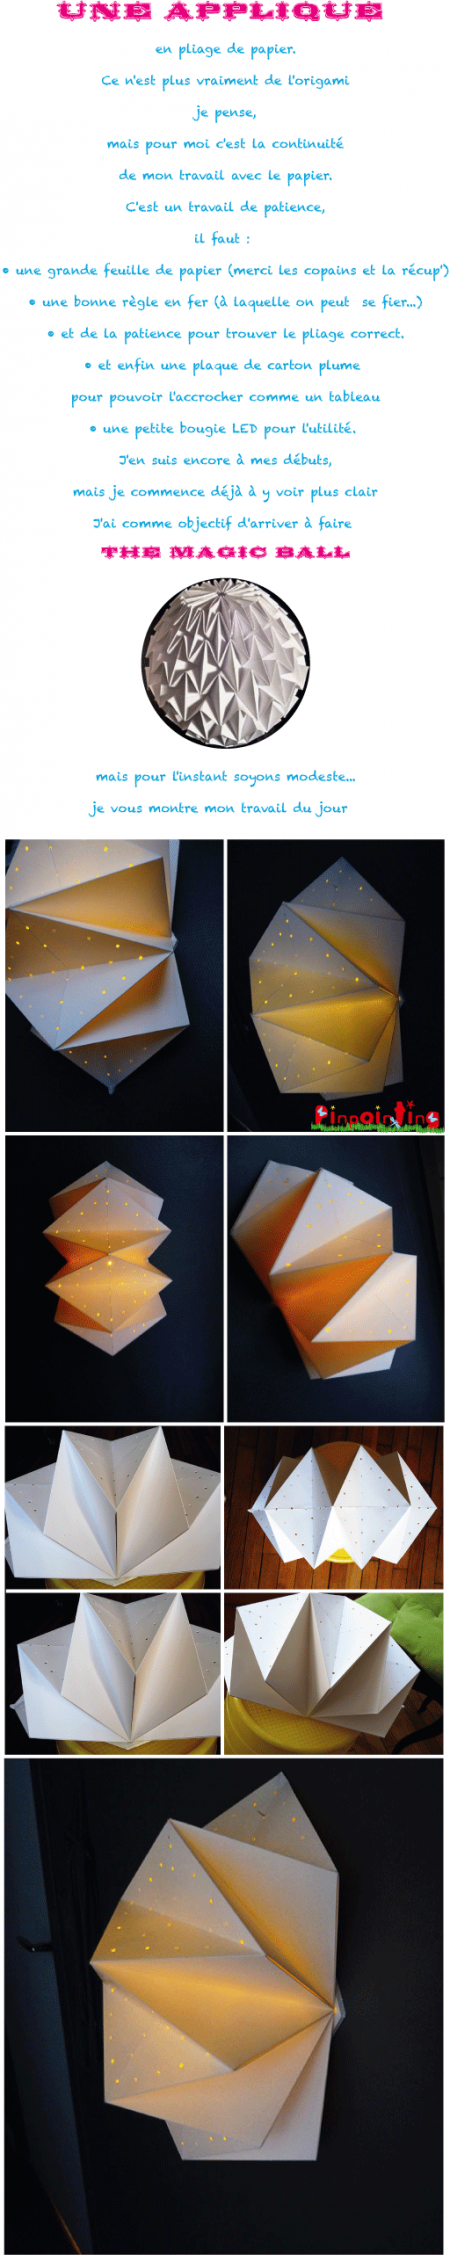 aplique,papier,pliage,origami,bougie led